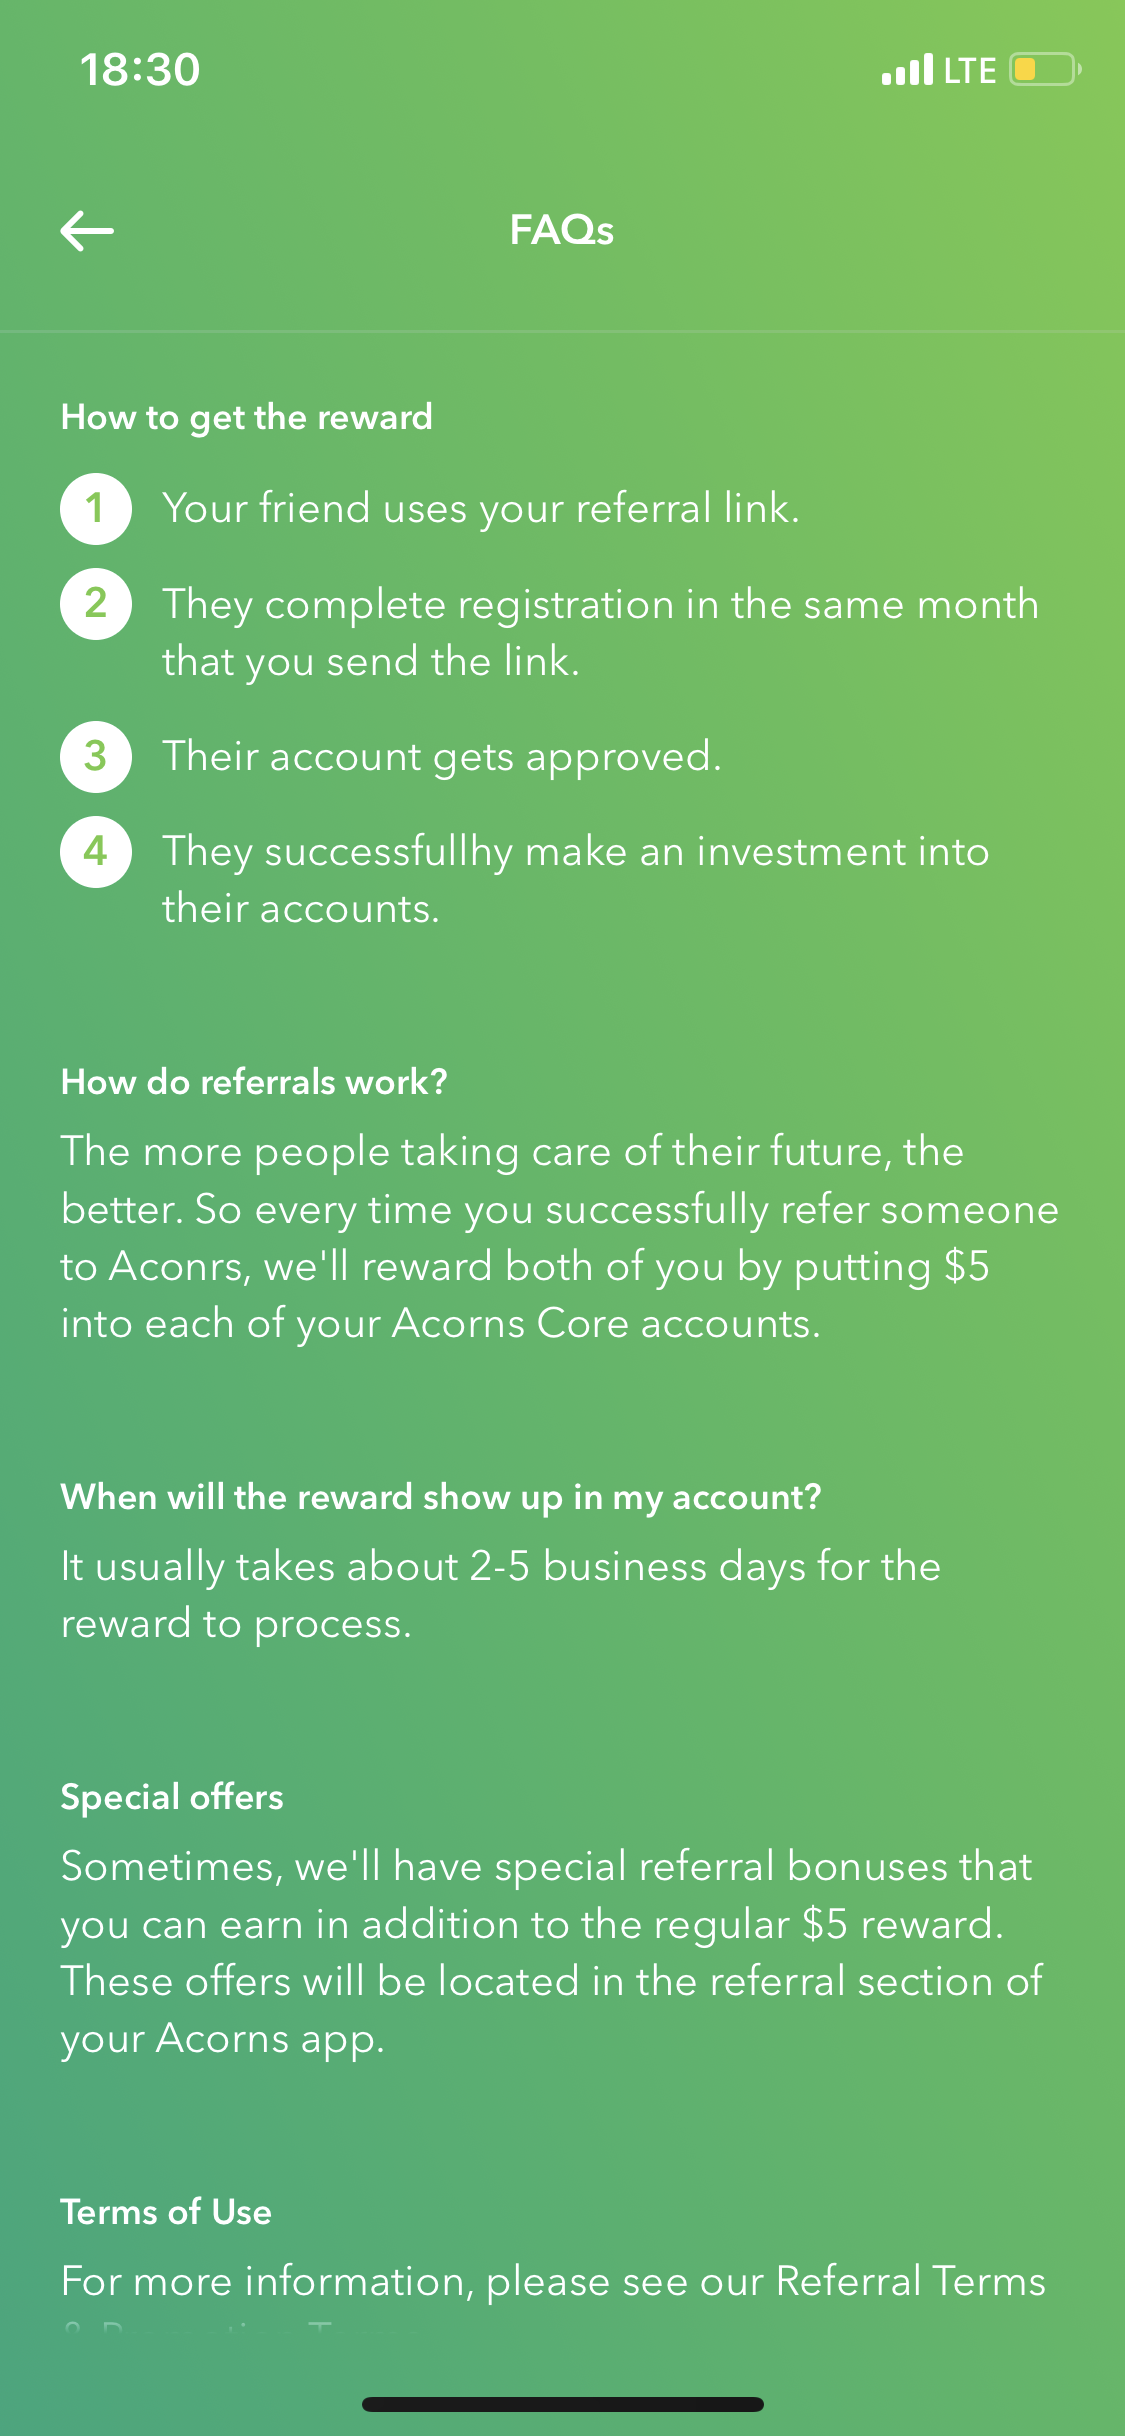 Get $5 of free stocks when you sign up for Acorns with the following link and make an initial investment of $5 minimum